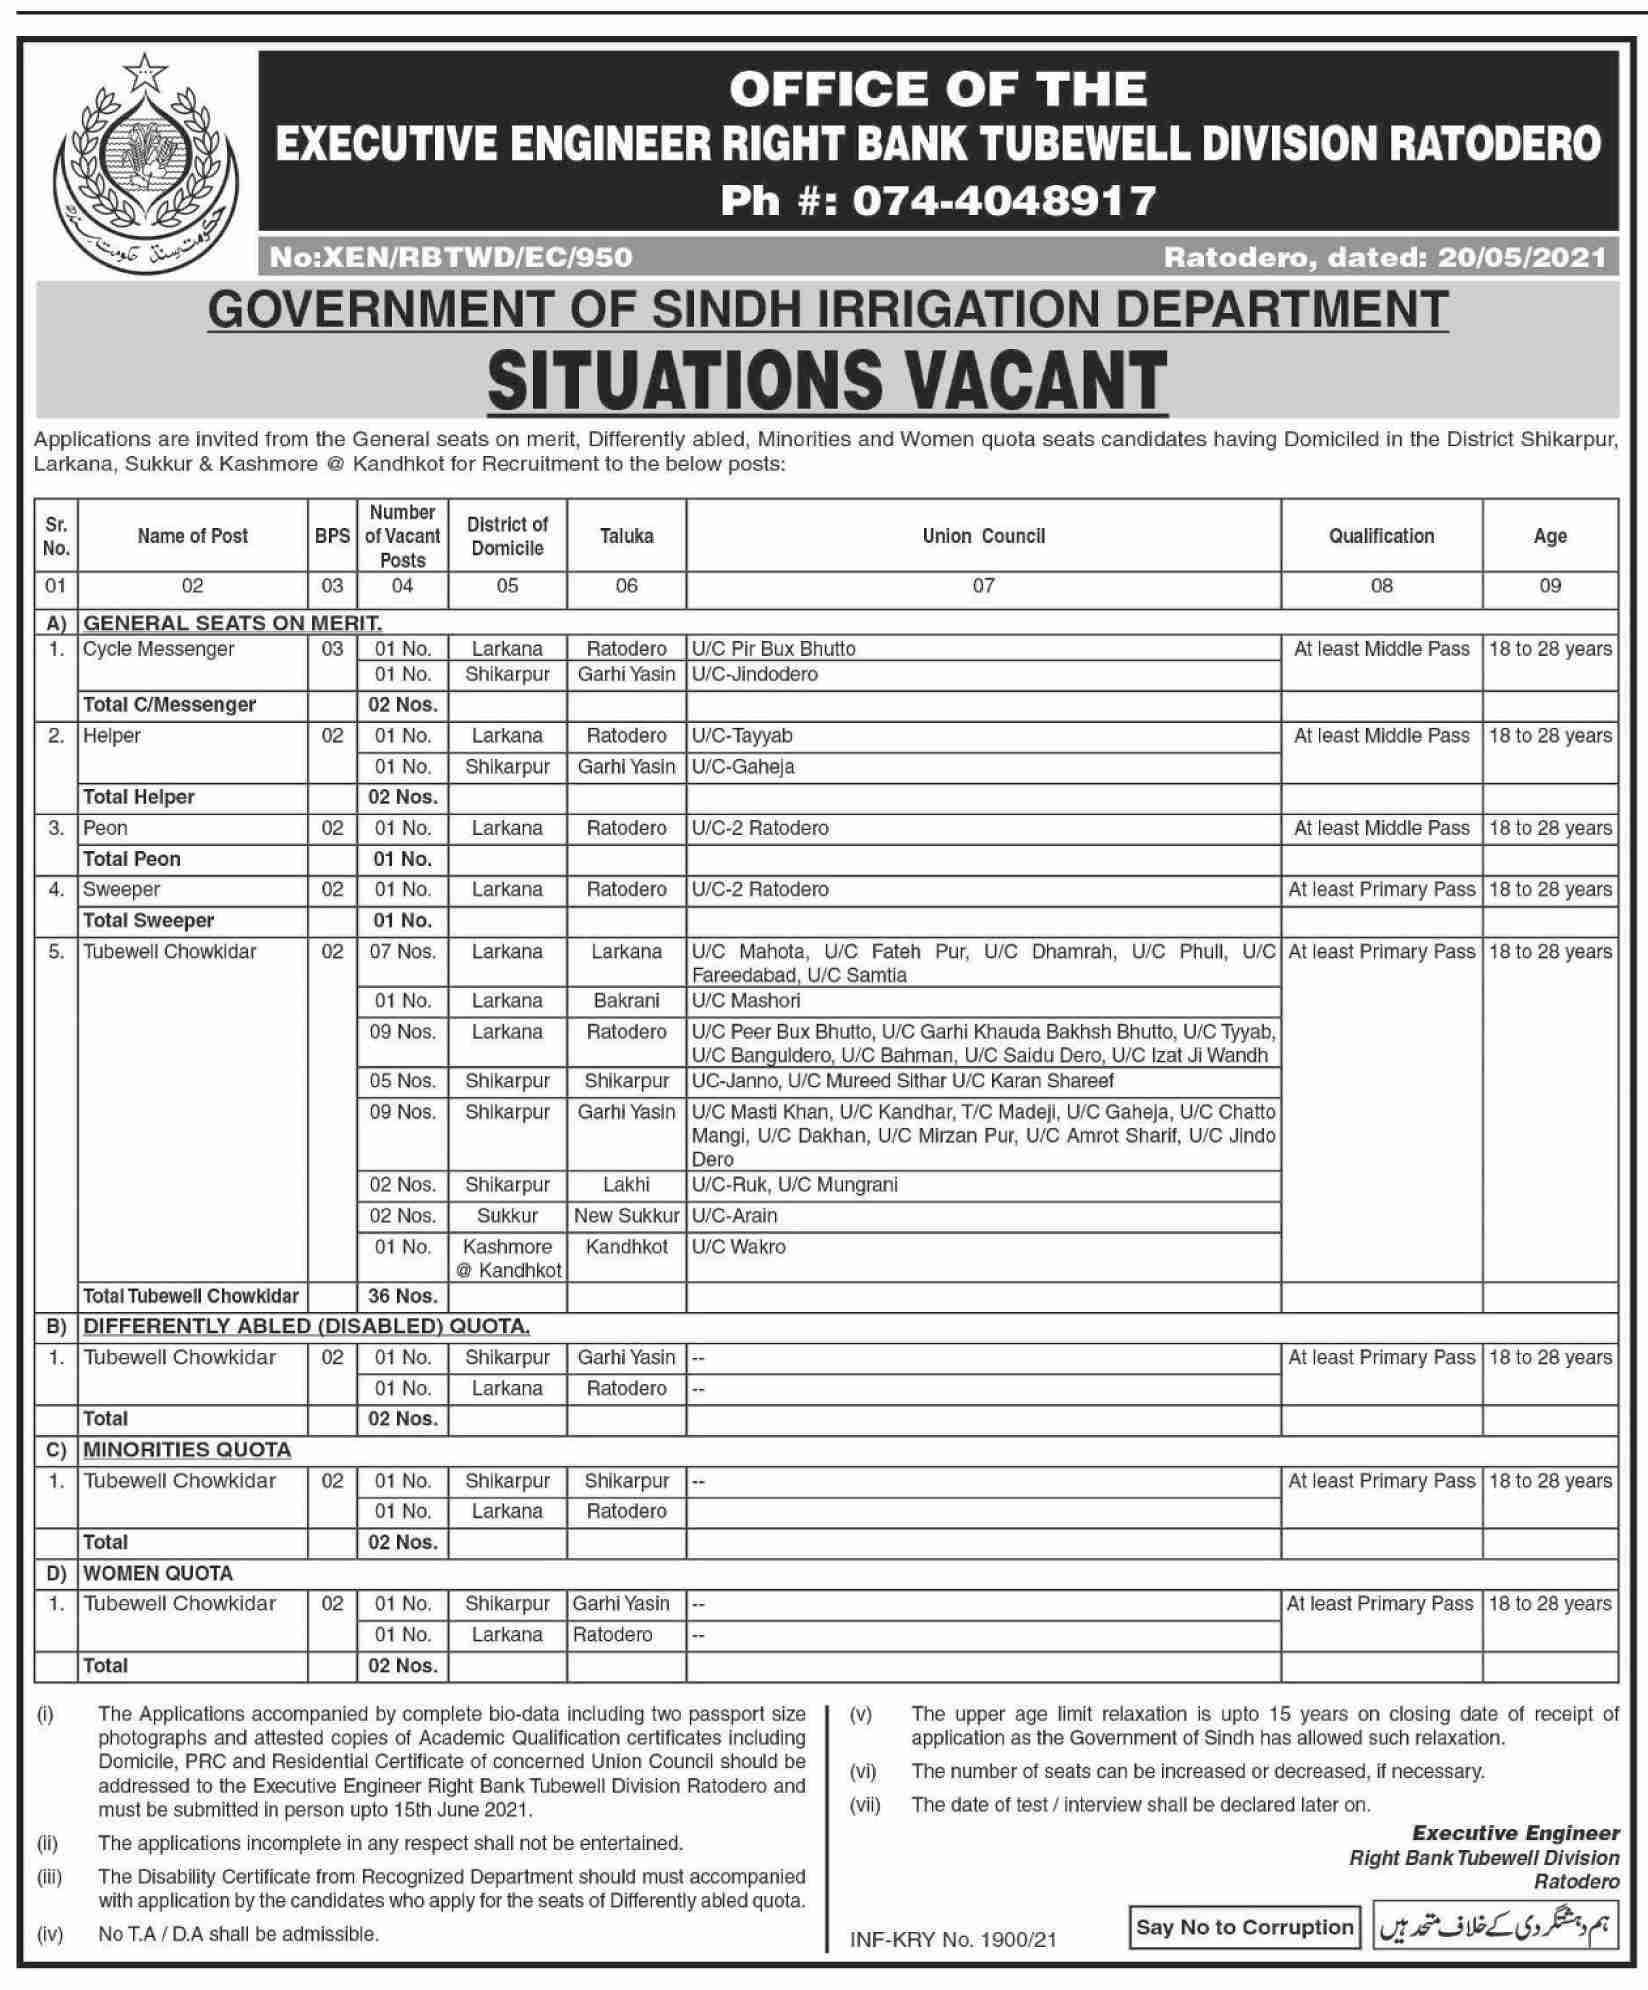 Govt of Sindh Irrigation Department Jobs May 2021